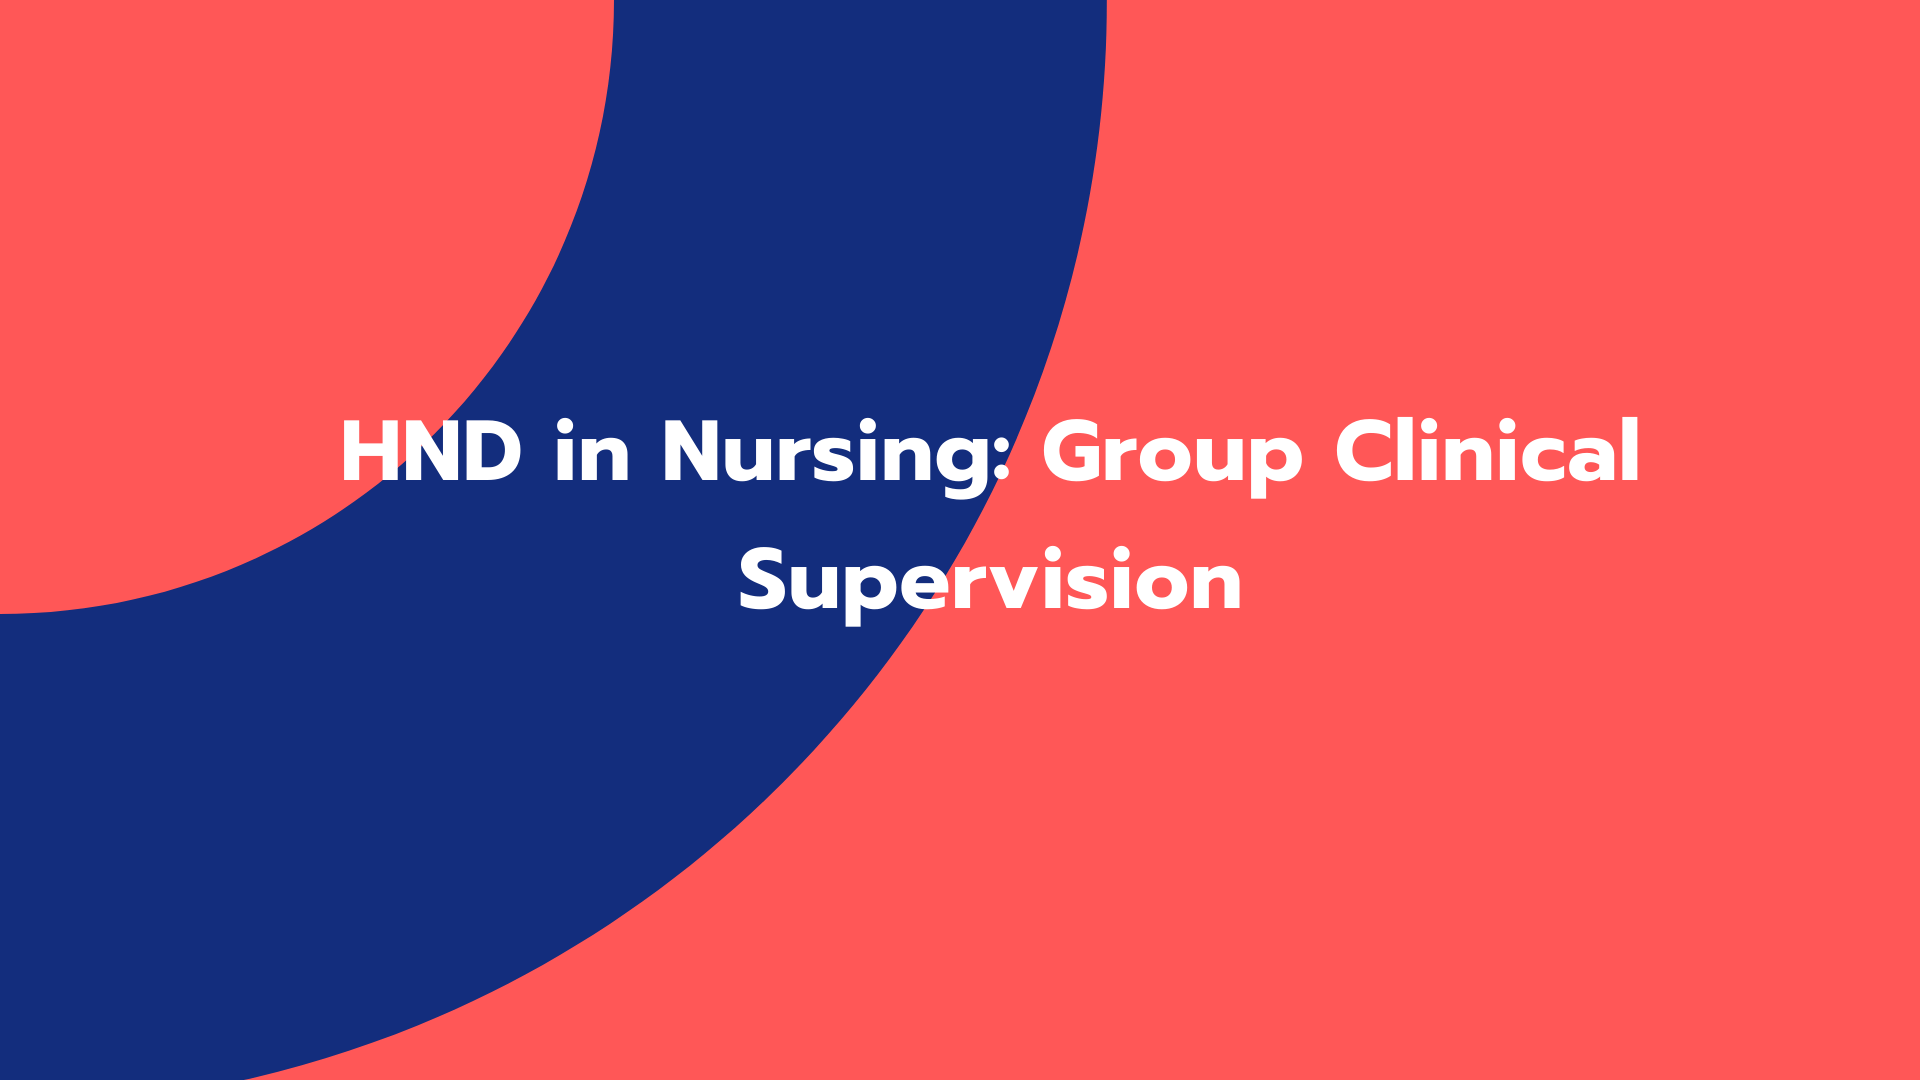 HND in Nursing: Group Clinical Supervision